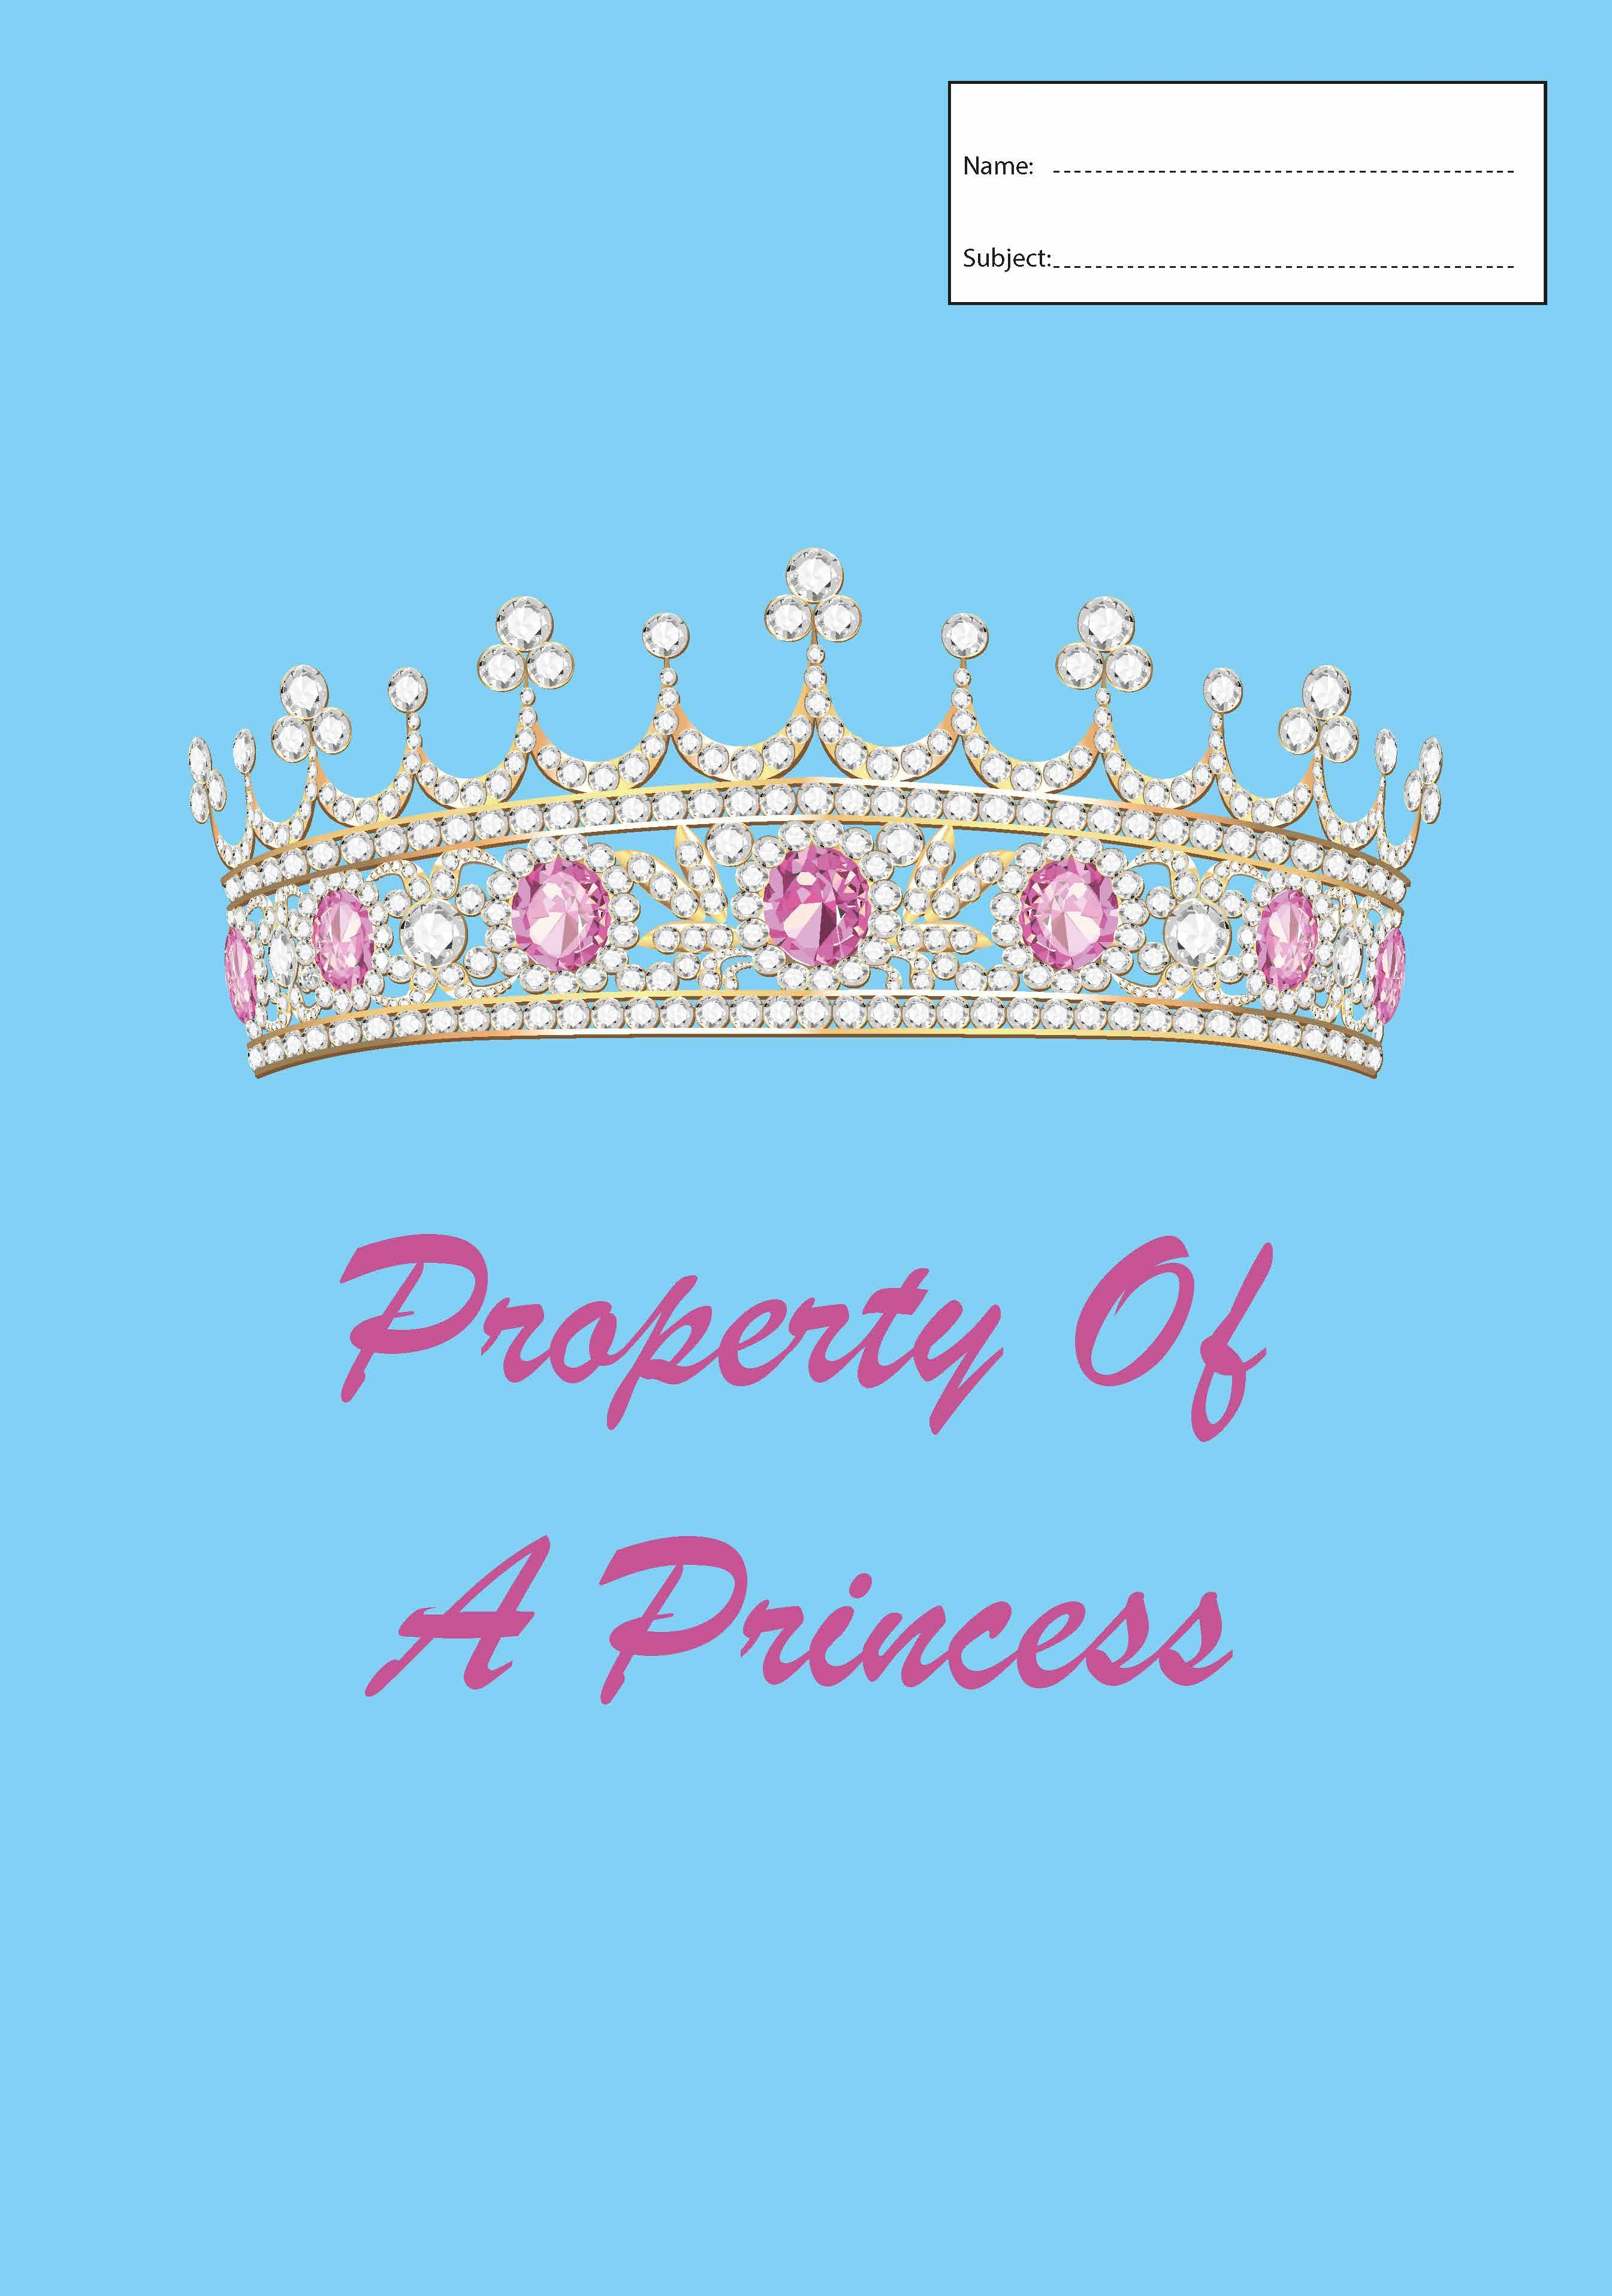 Book Cover - A4 - Princess